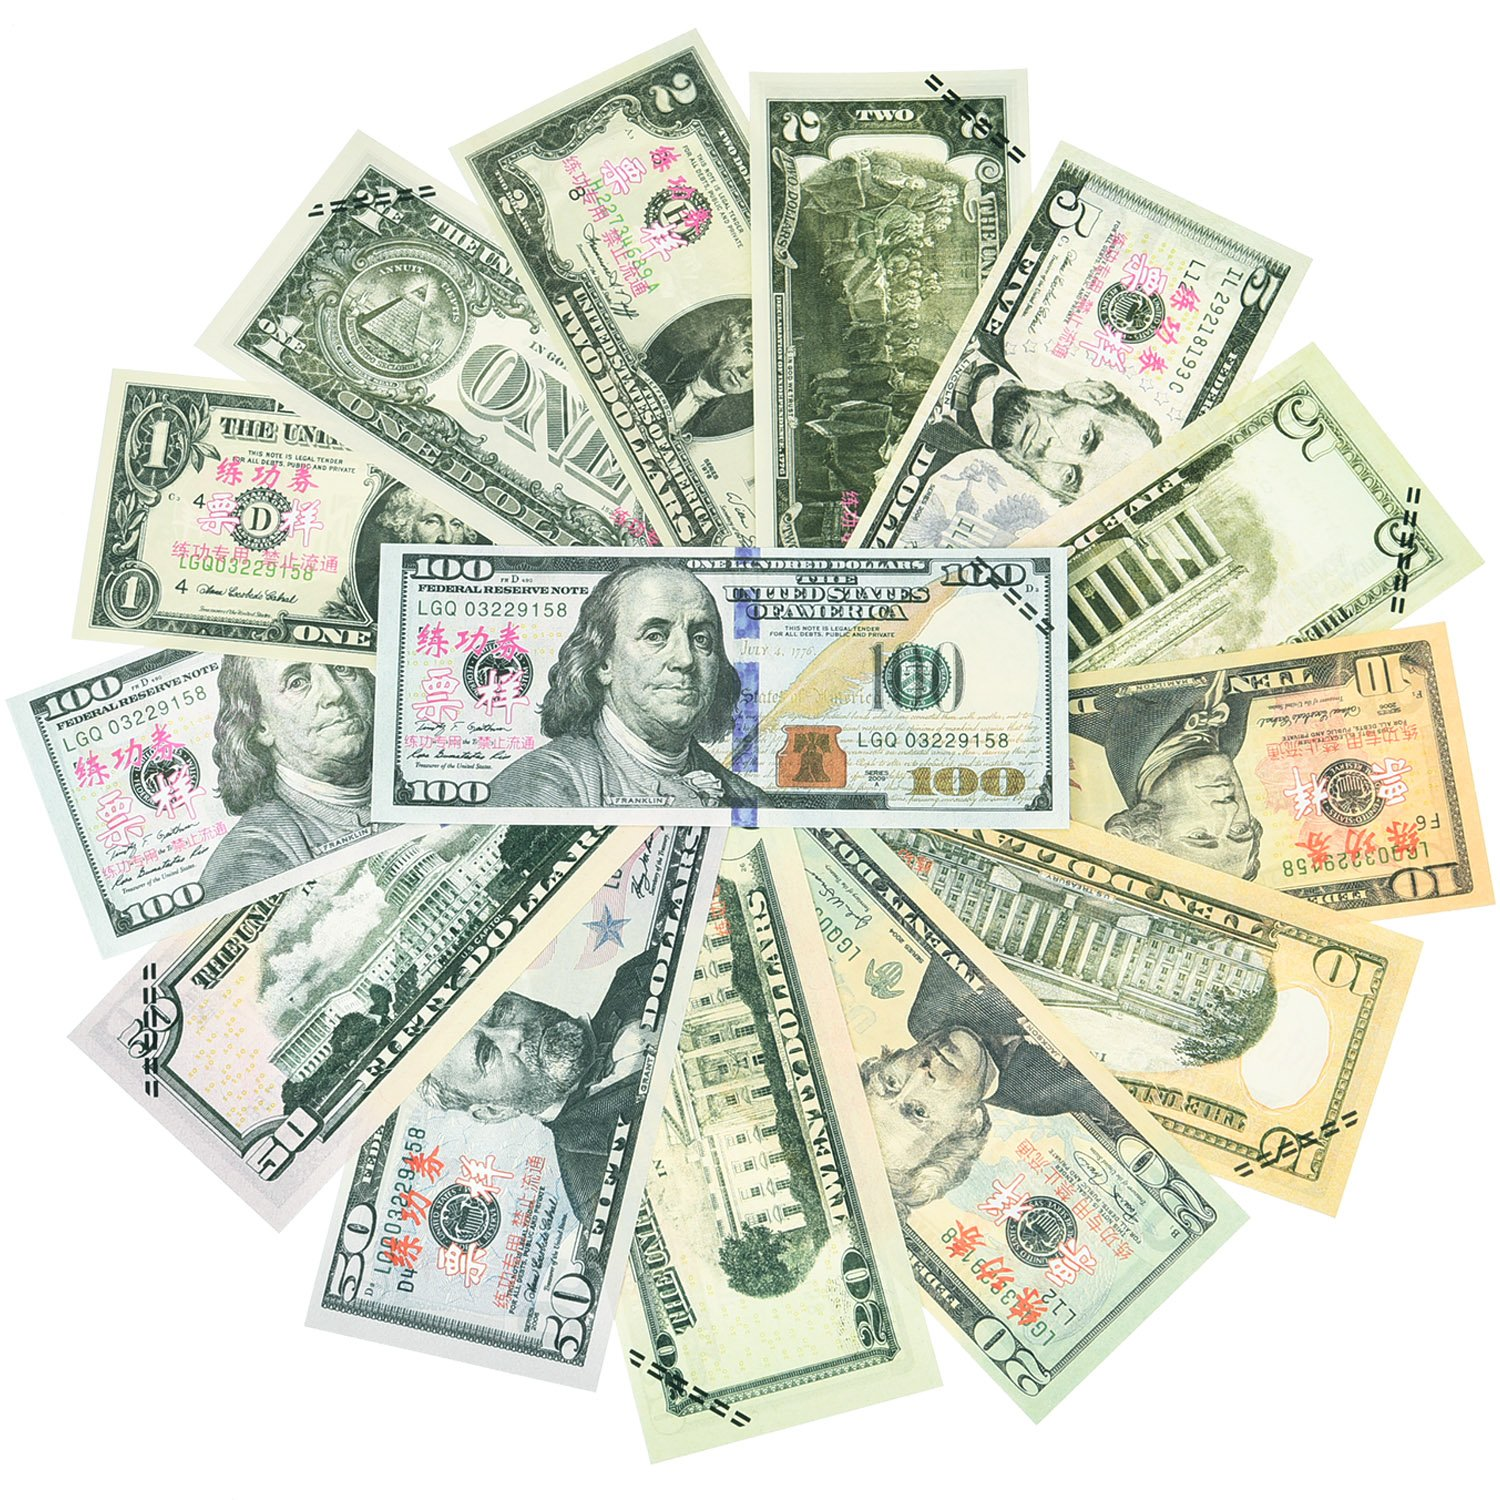 Boao Copy Money Fake Money Prop Money Set 1, 2, 5, 10, 20, 50, 100 Dollar Bills Double Sided Pretend Play Money for Motion Picture Props, 350 Bills, Amount 9,400 Dollars